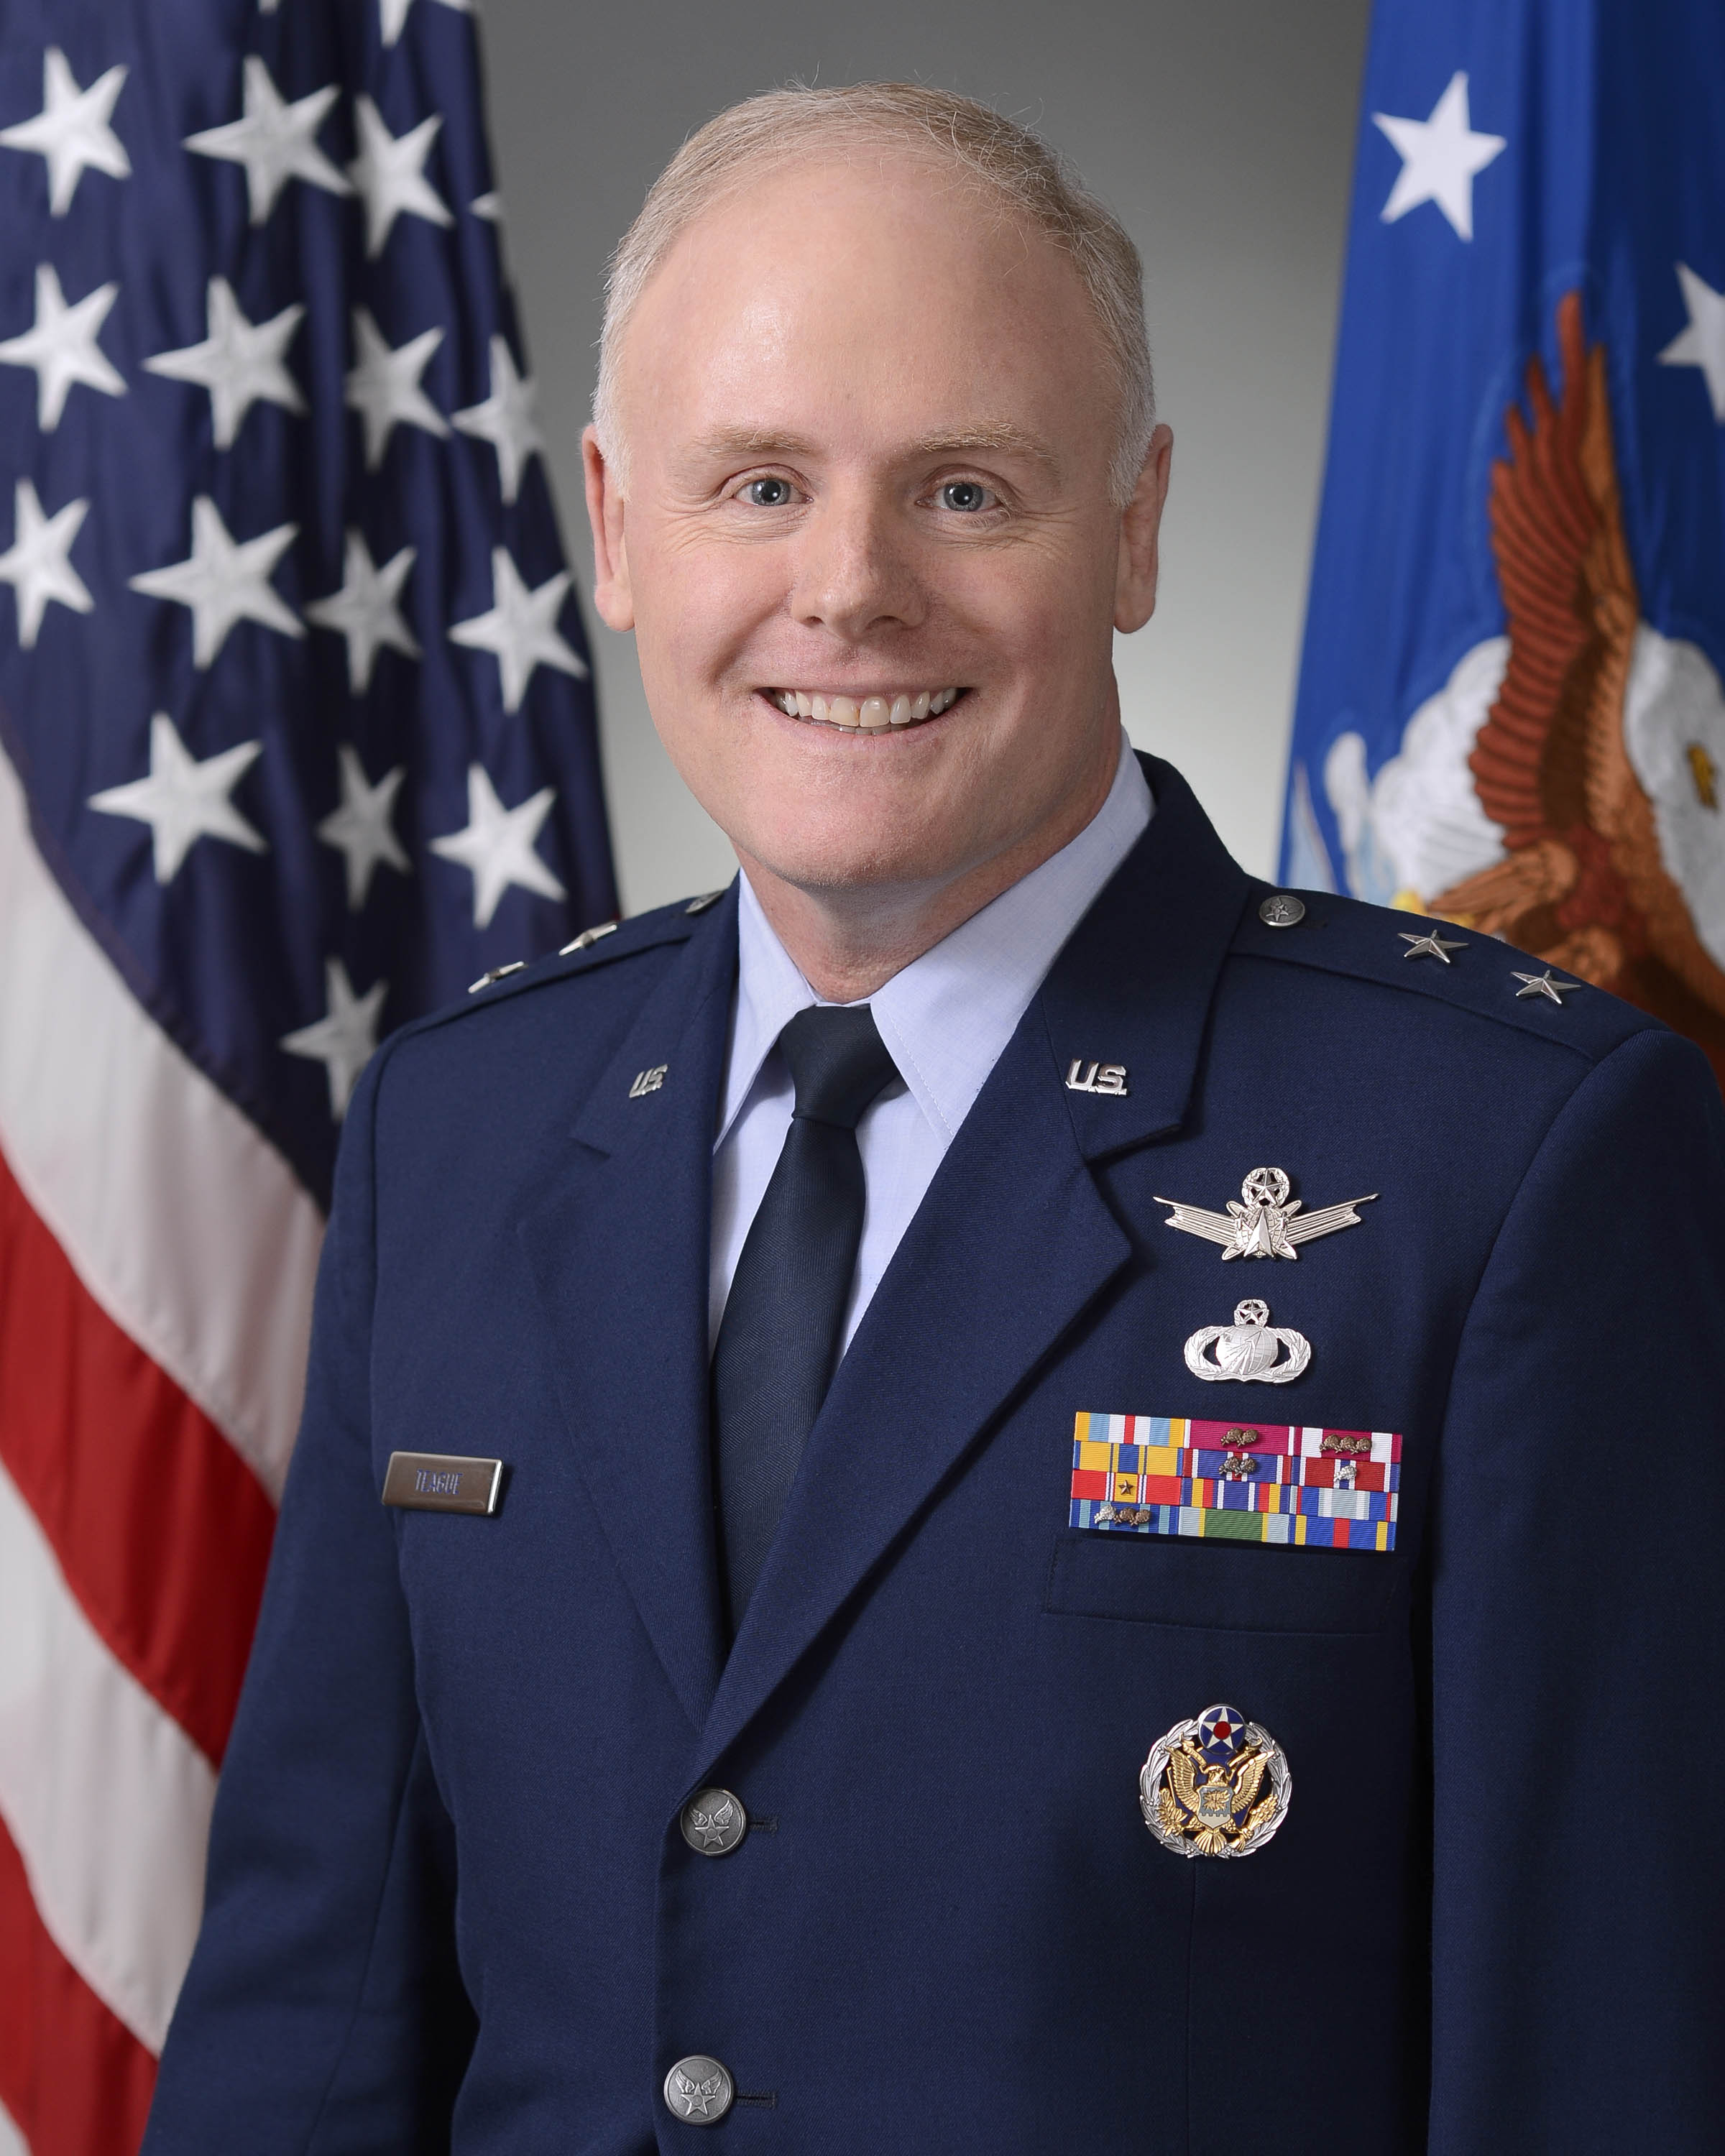 Official Air Force Image: MGen Roger Teague Bio Photo